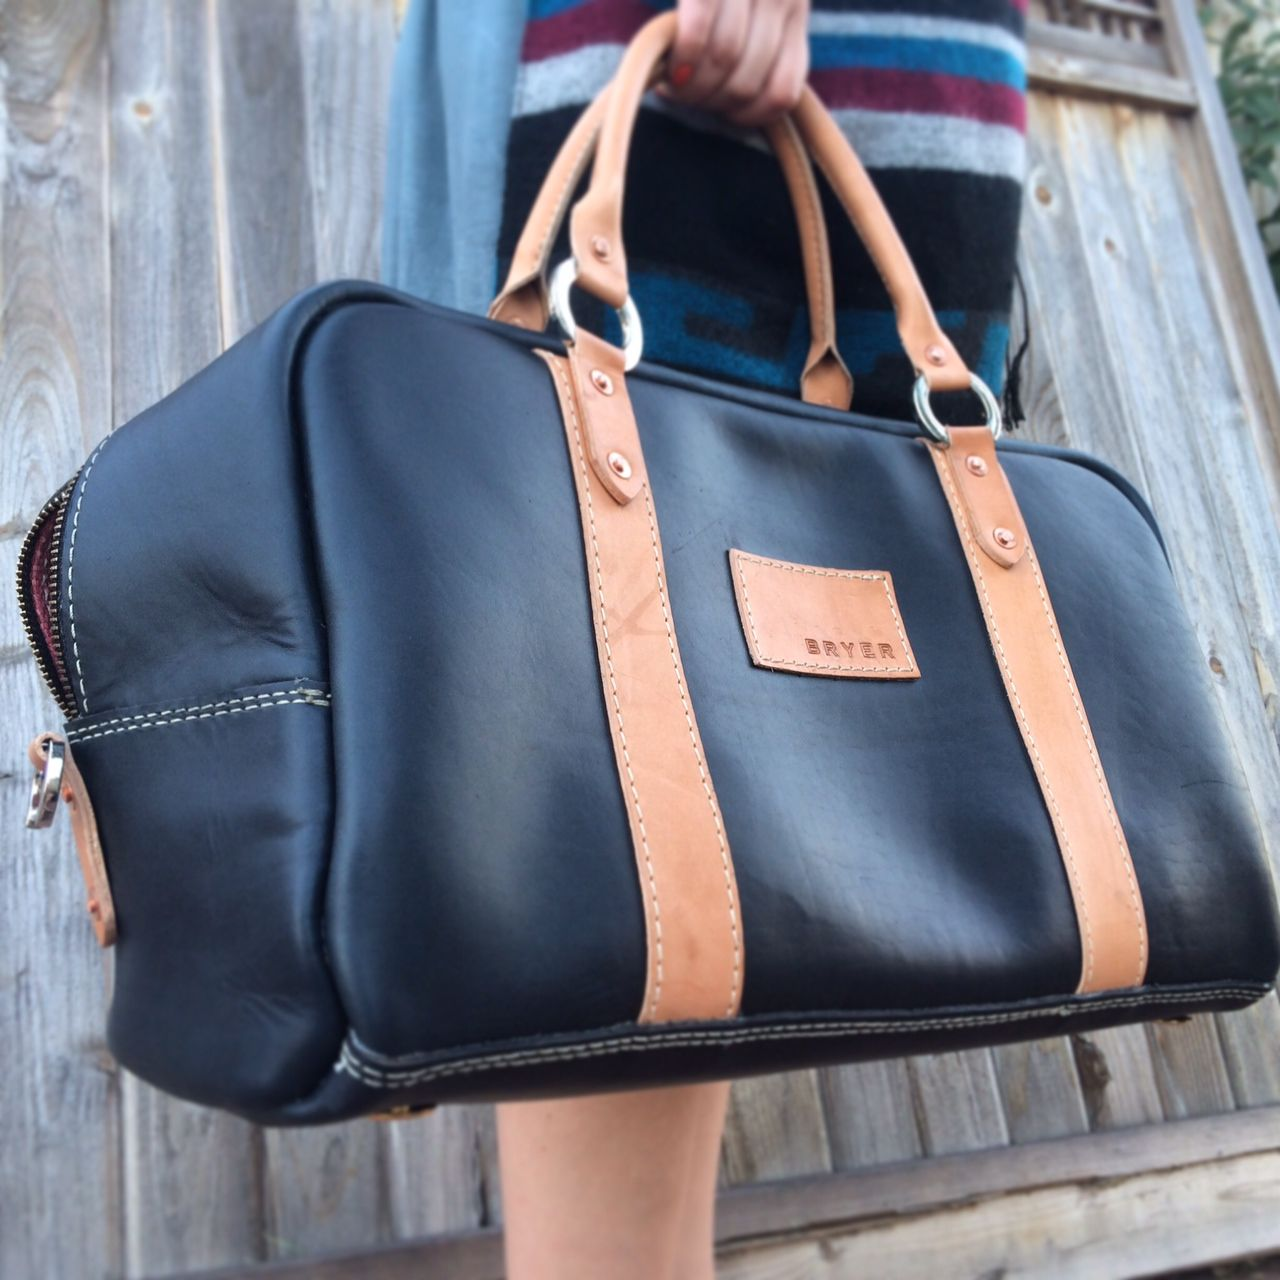 3e3c8cb5812 Perfect weekender bag in a black and tan color!   Bryer Leather ...